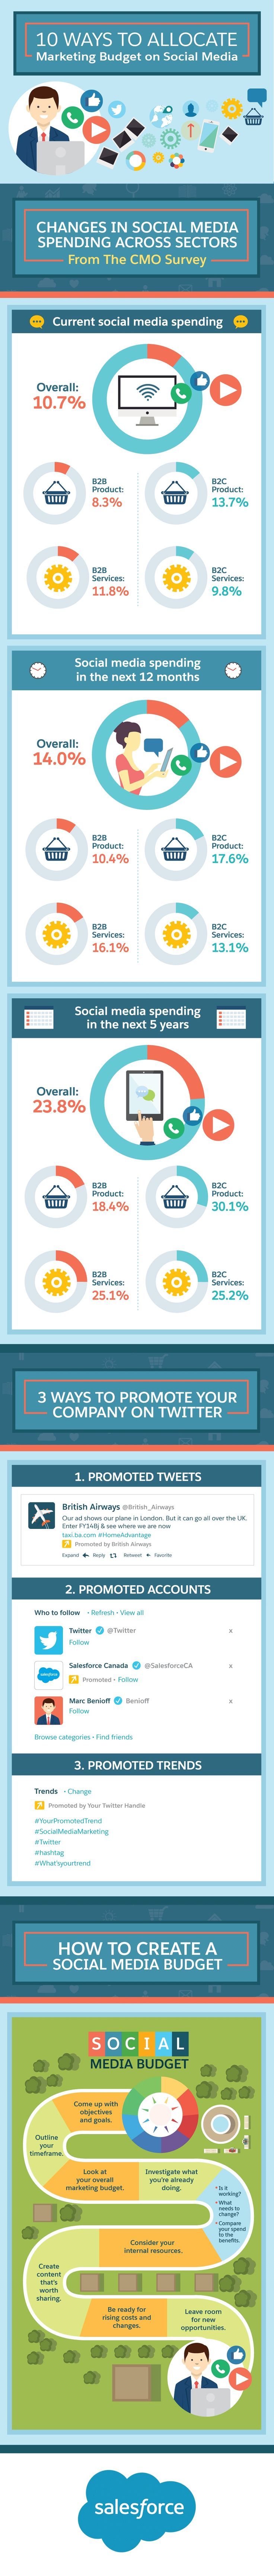 10 Ways to Use Your Marketing Budget to Advertise on Social Media - infographic   http://weathertightroofinginc.com